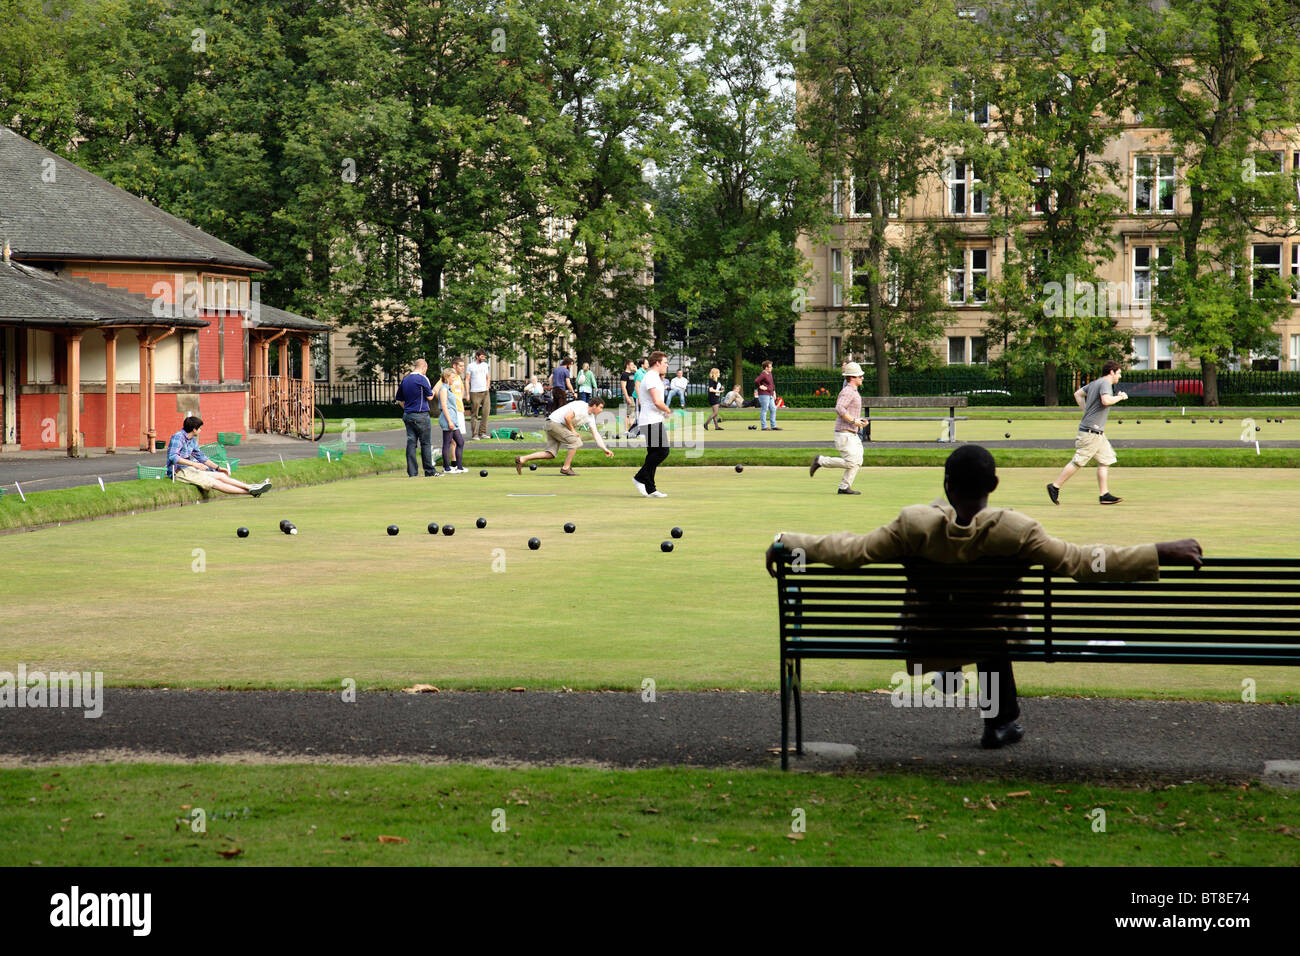 Playing Lawn Bowls in, Scotland, UK - Stock Image